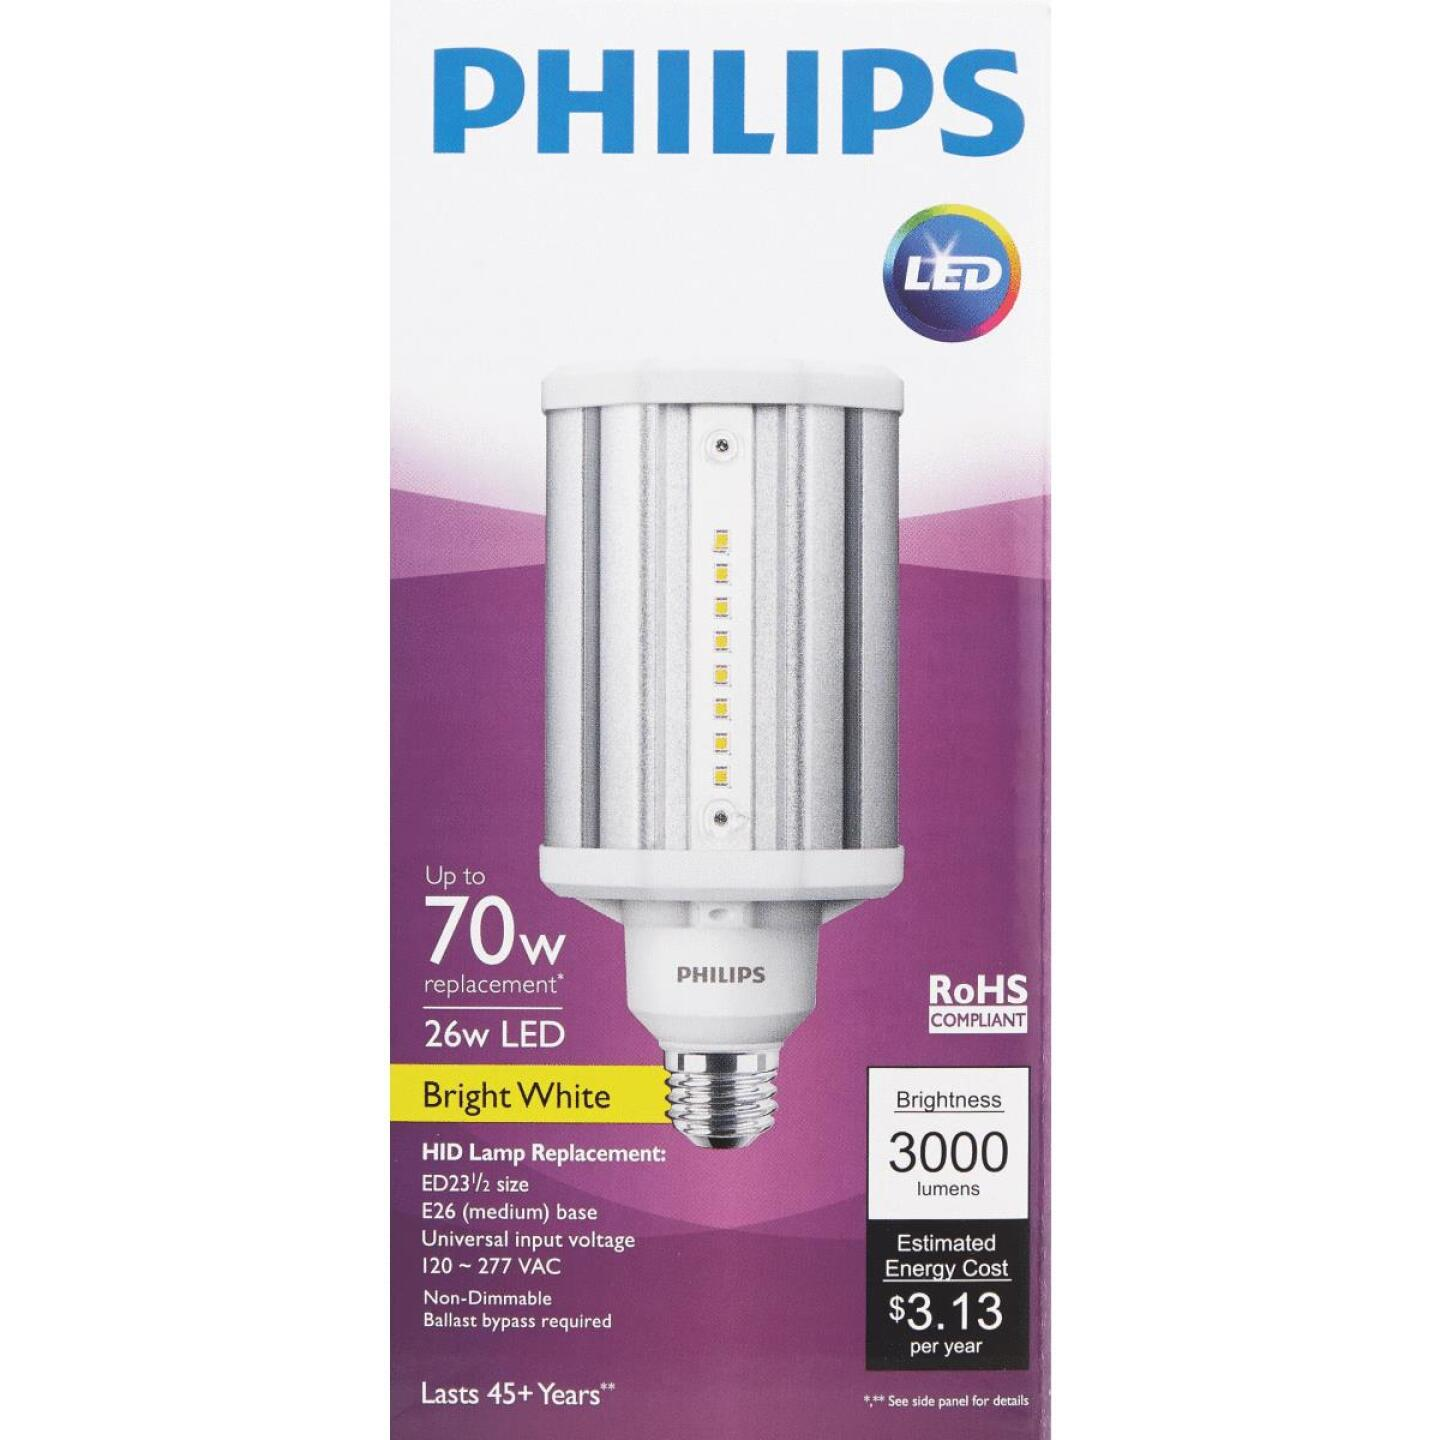 Philips TrueForce 26W Clear Corn Cob Medium Base LED High-Intensity Light Bulb Image 2